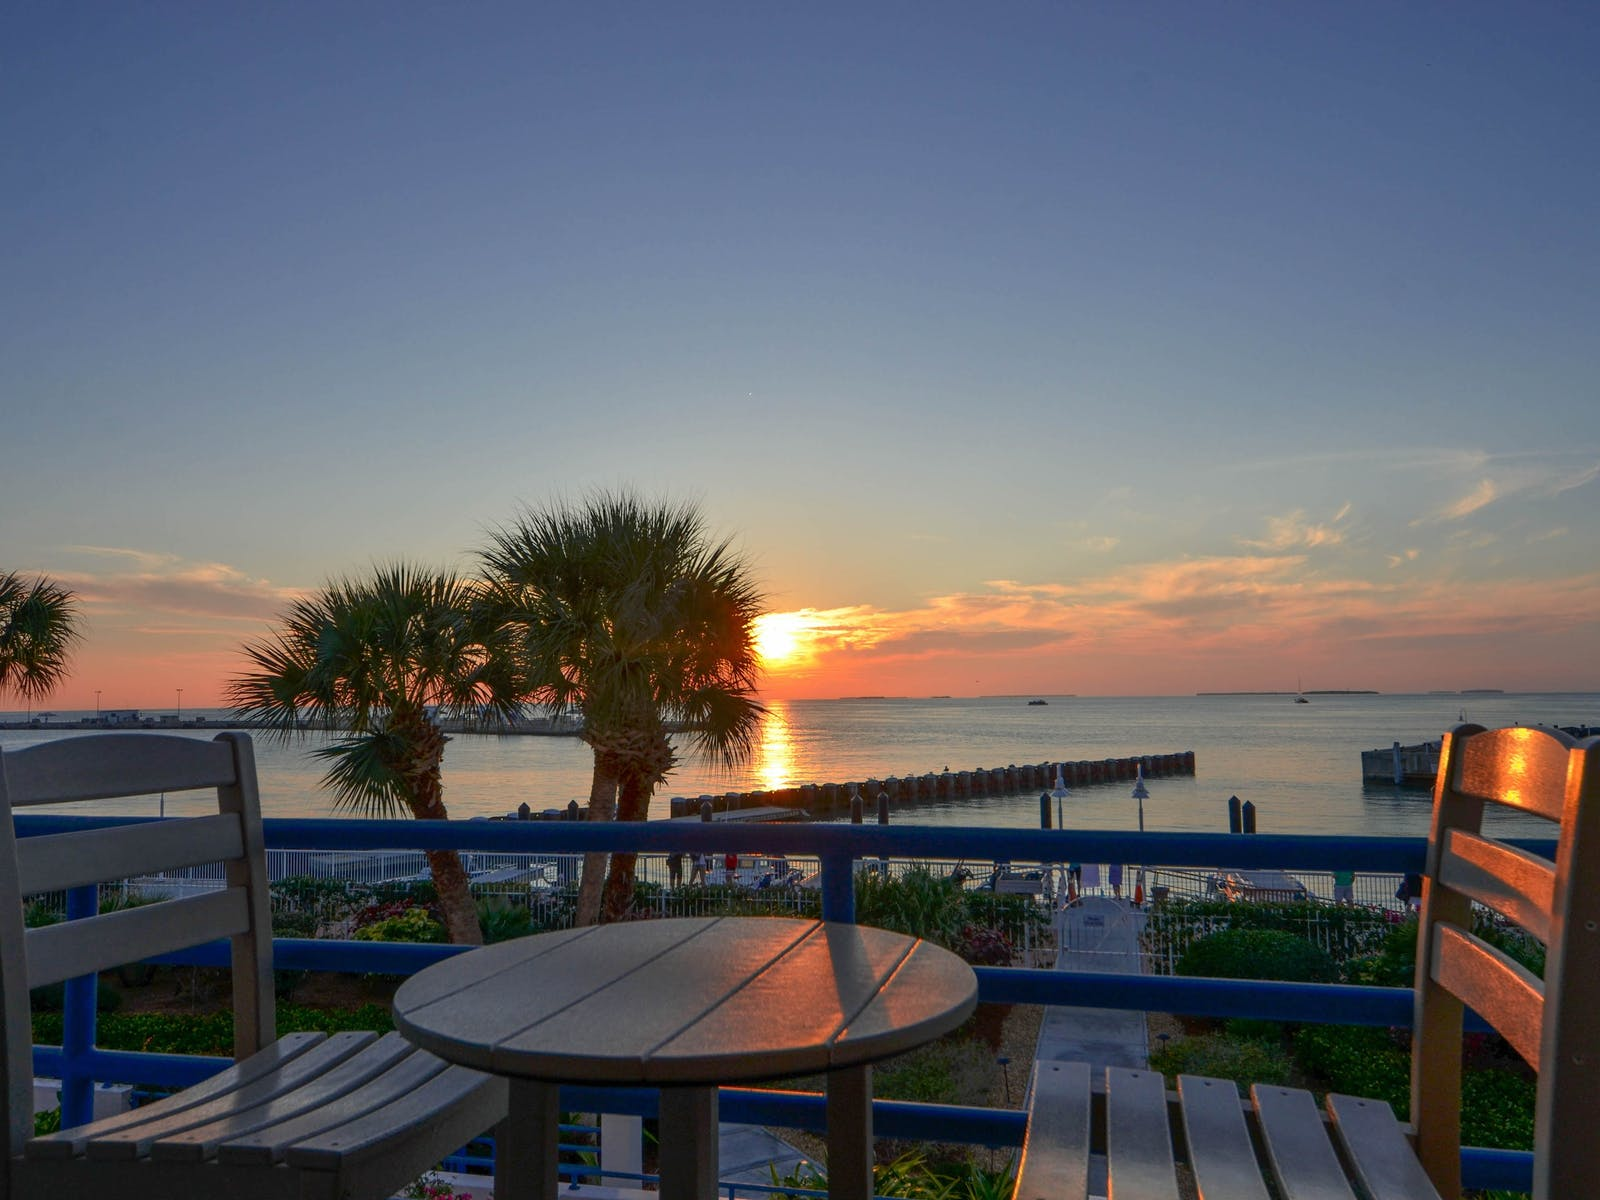 View of sunset over the water from Key West, FL vacation rental balcony